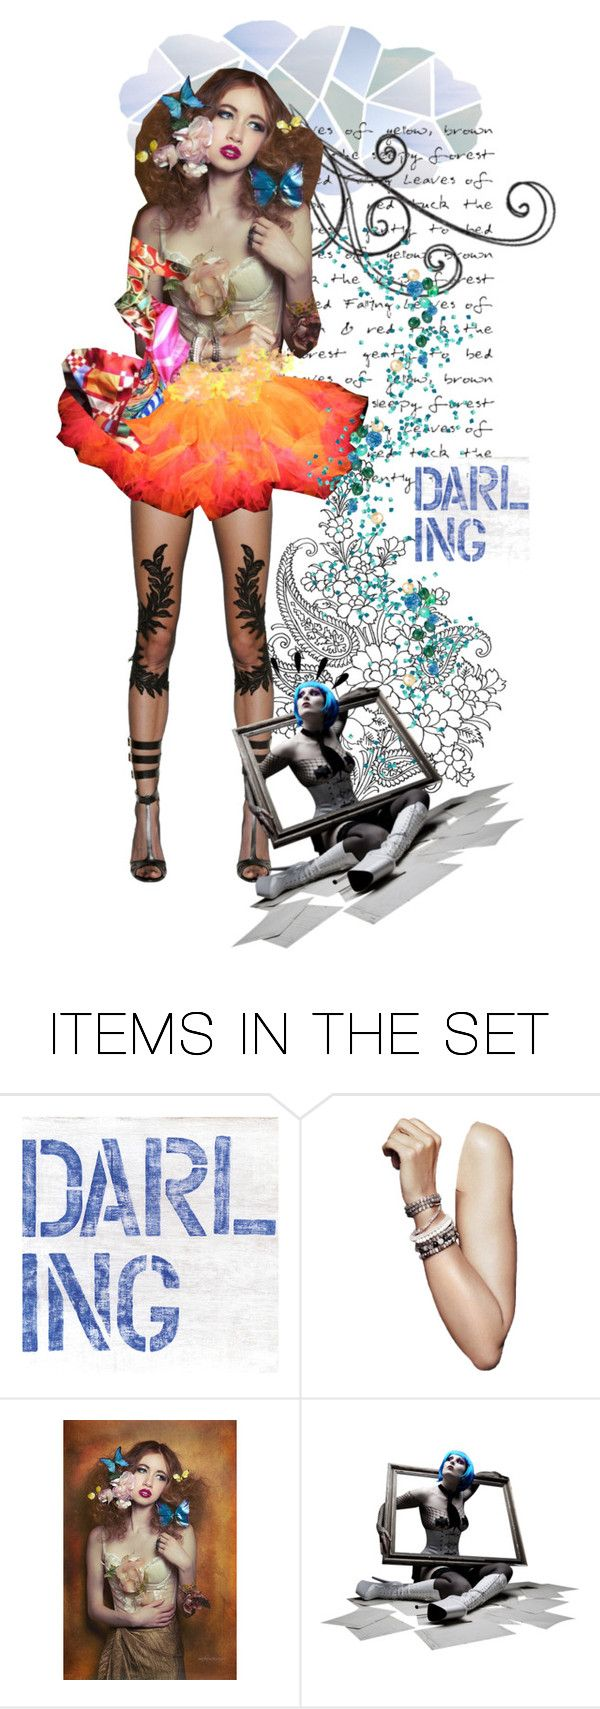 """""""~DARLING~ TAS 4/19/16"""" by confusgrk ❤ liked on Polyvore featuring art"""